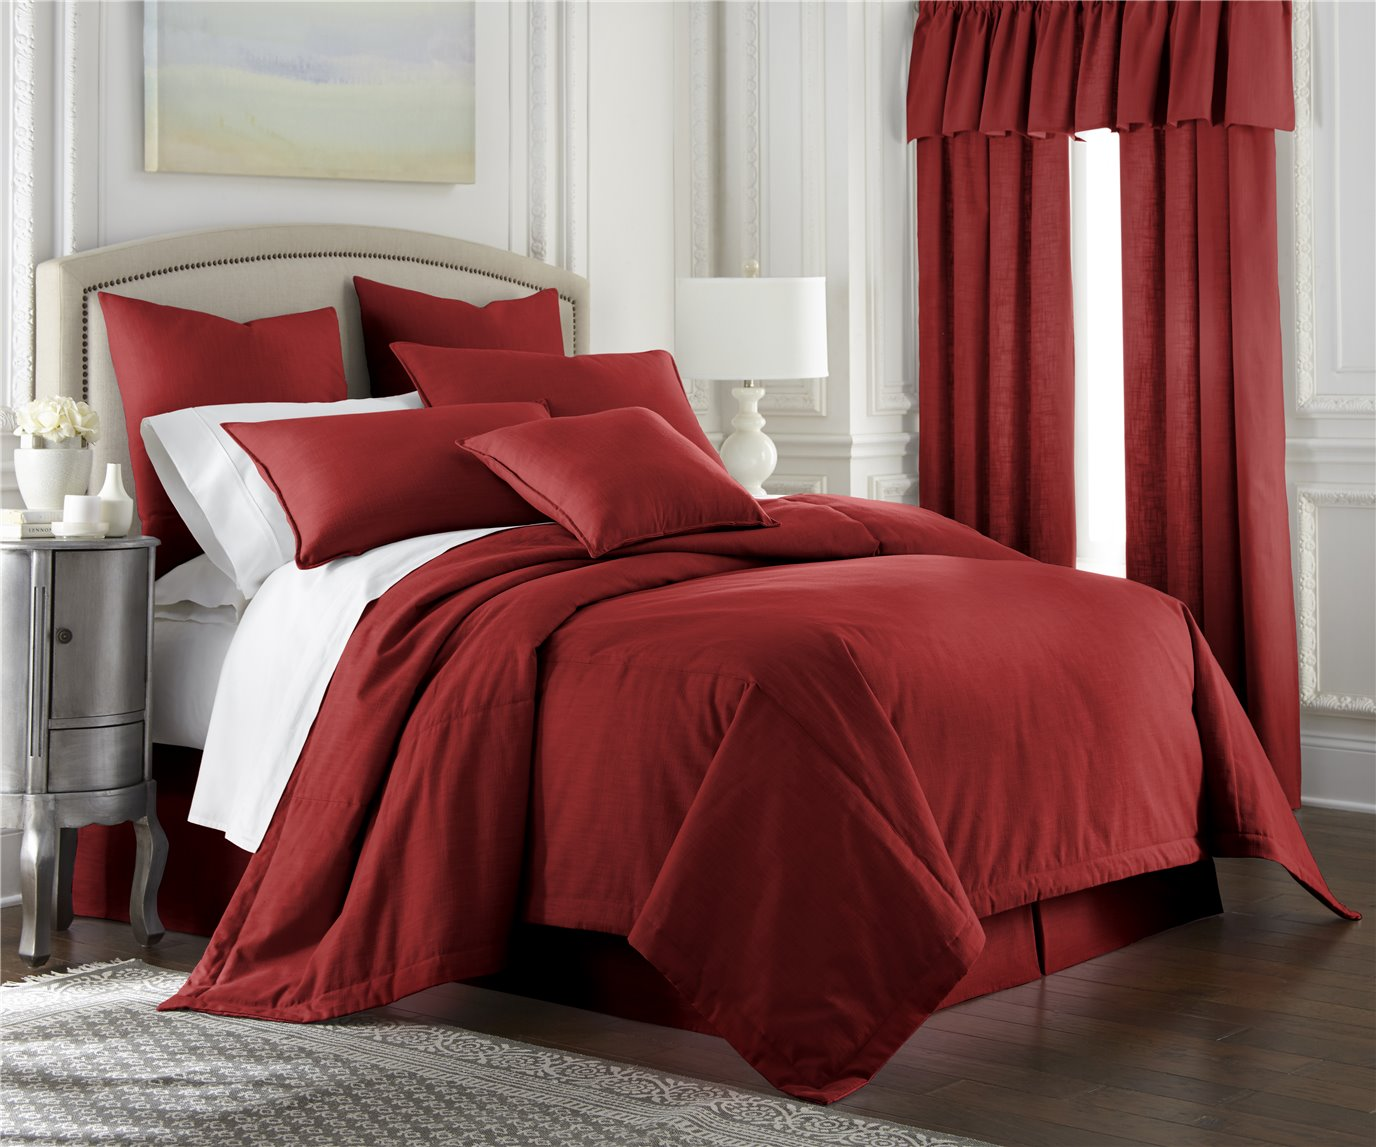 Cambric Red Duvet Cover Queen